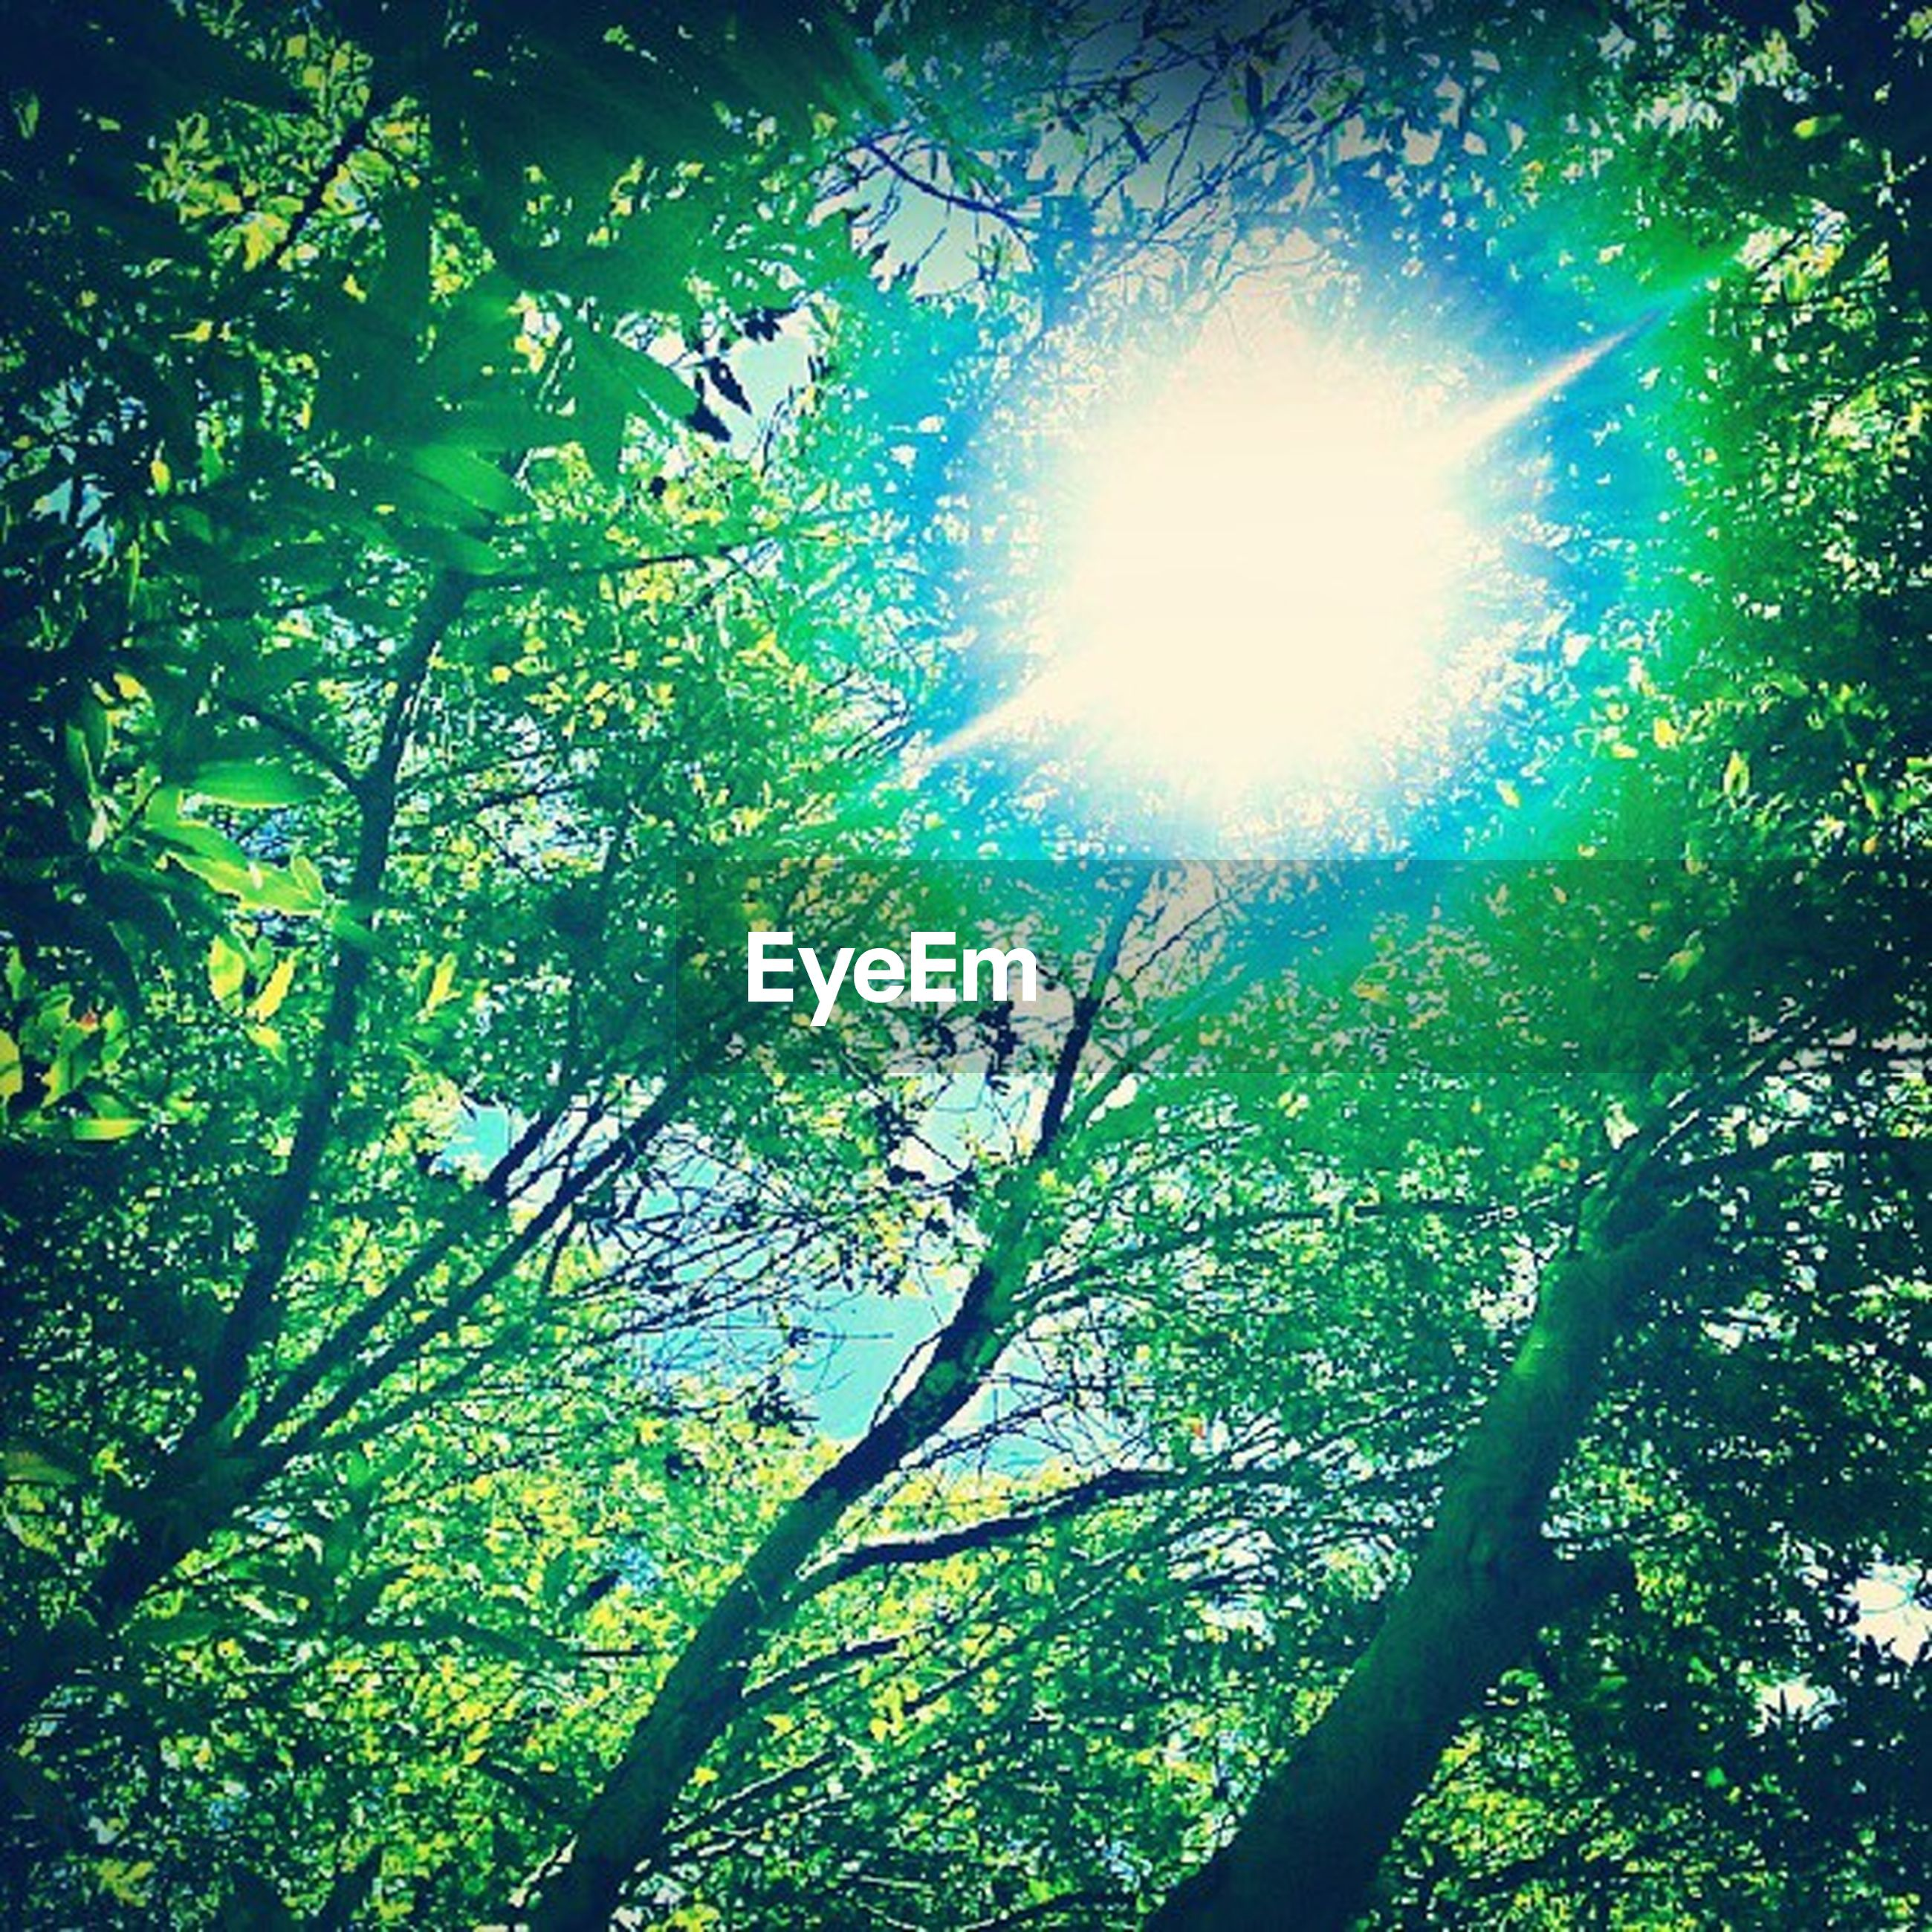 tree, low angle view, sun, growth, branch, sunbeam, sunlight, lens flare, nature, tranquility, beauty in nature, green color, forest, sunny, day, sky, leaf, scenics, bright, outdoors